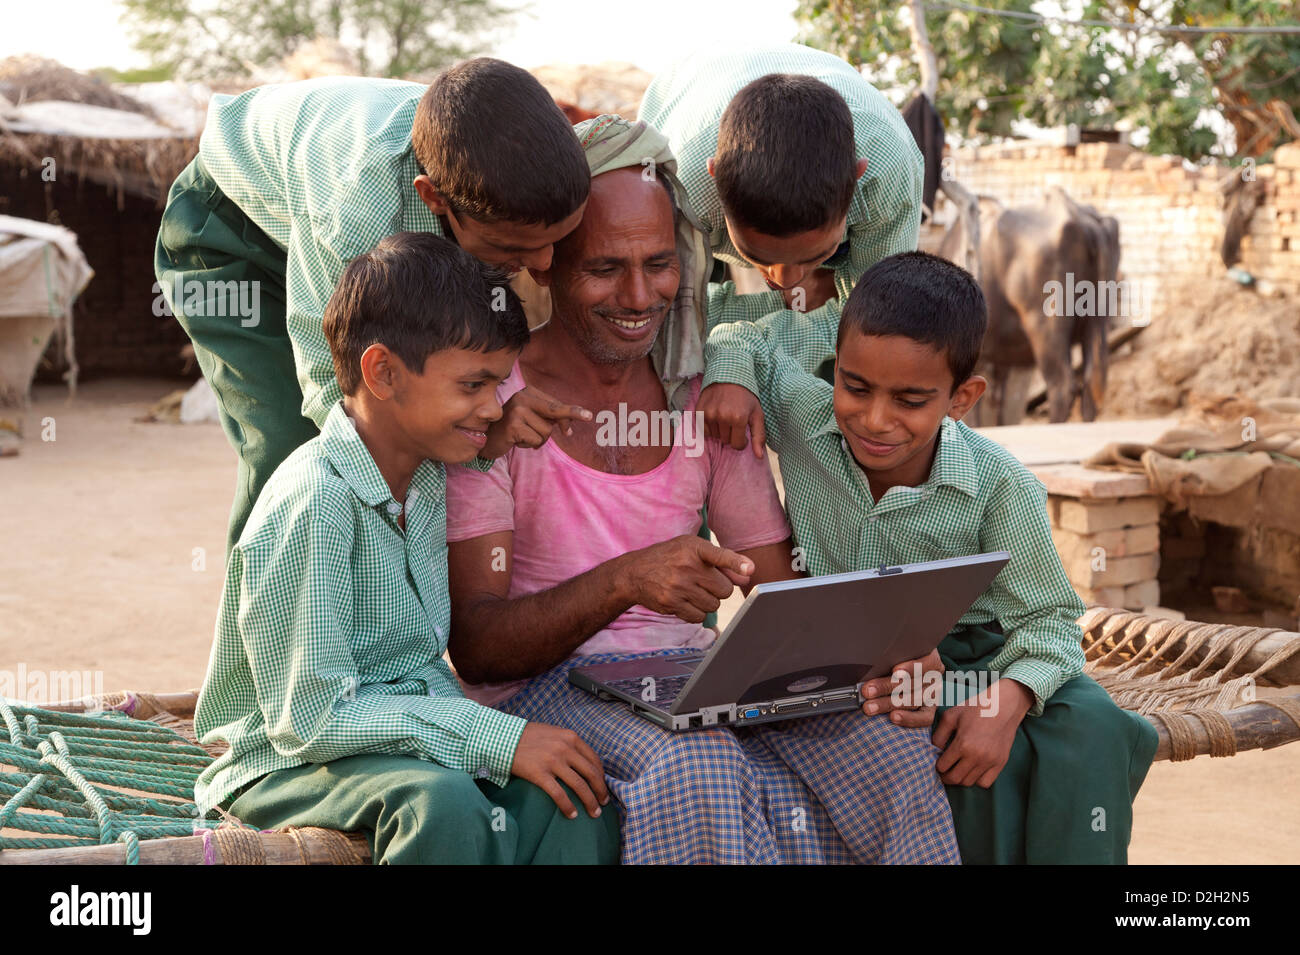 India, Uttar Pradesh, Agra, Two young children in school uniform studying laptop with father. - Stock Image